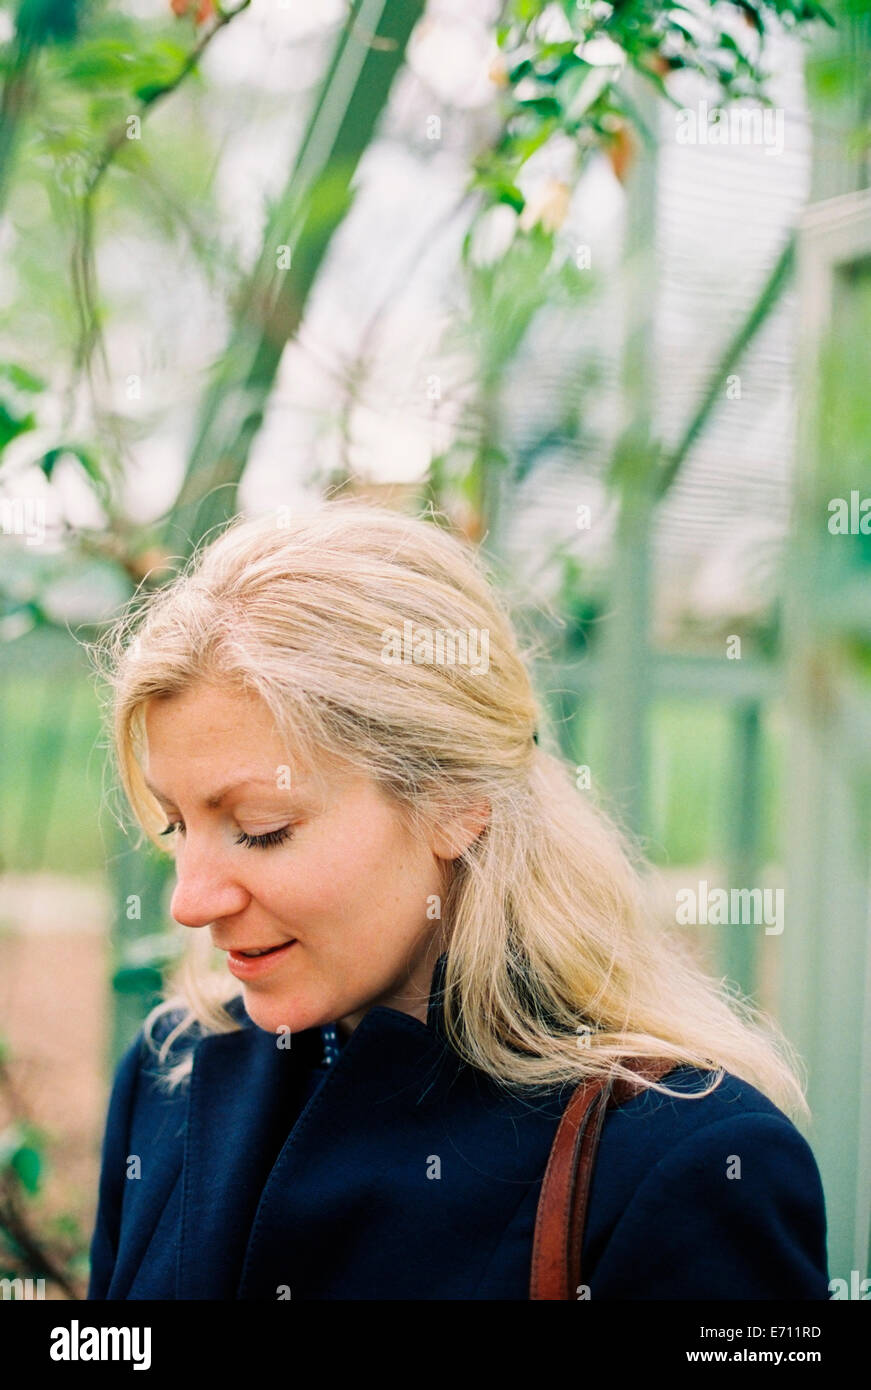 A blonde haired woman in a conservatory or tropical plant house. - Stock Image